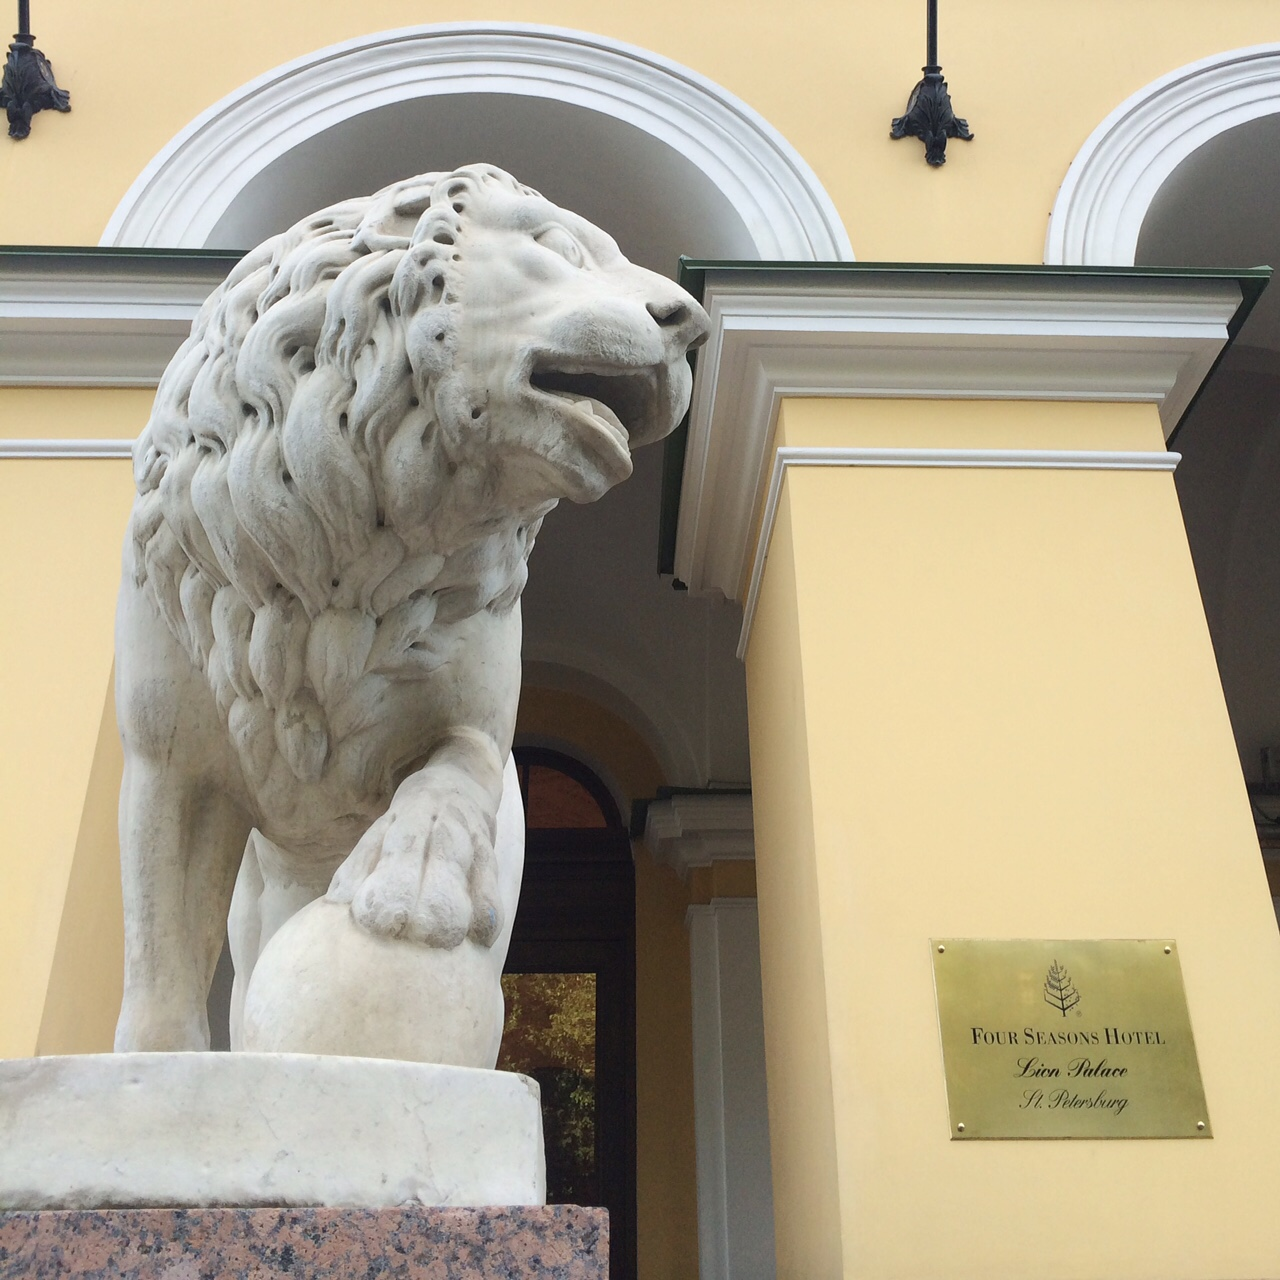 5 Reasons To Stay At Four Seasons Hotel Lion Palace St. Petersburg